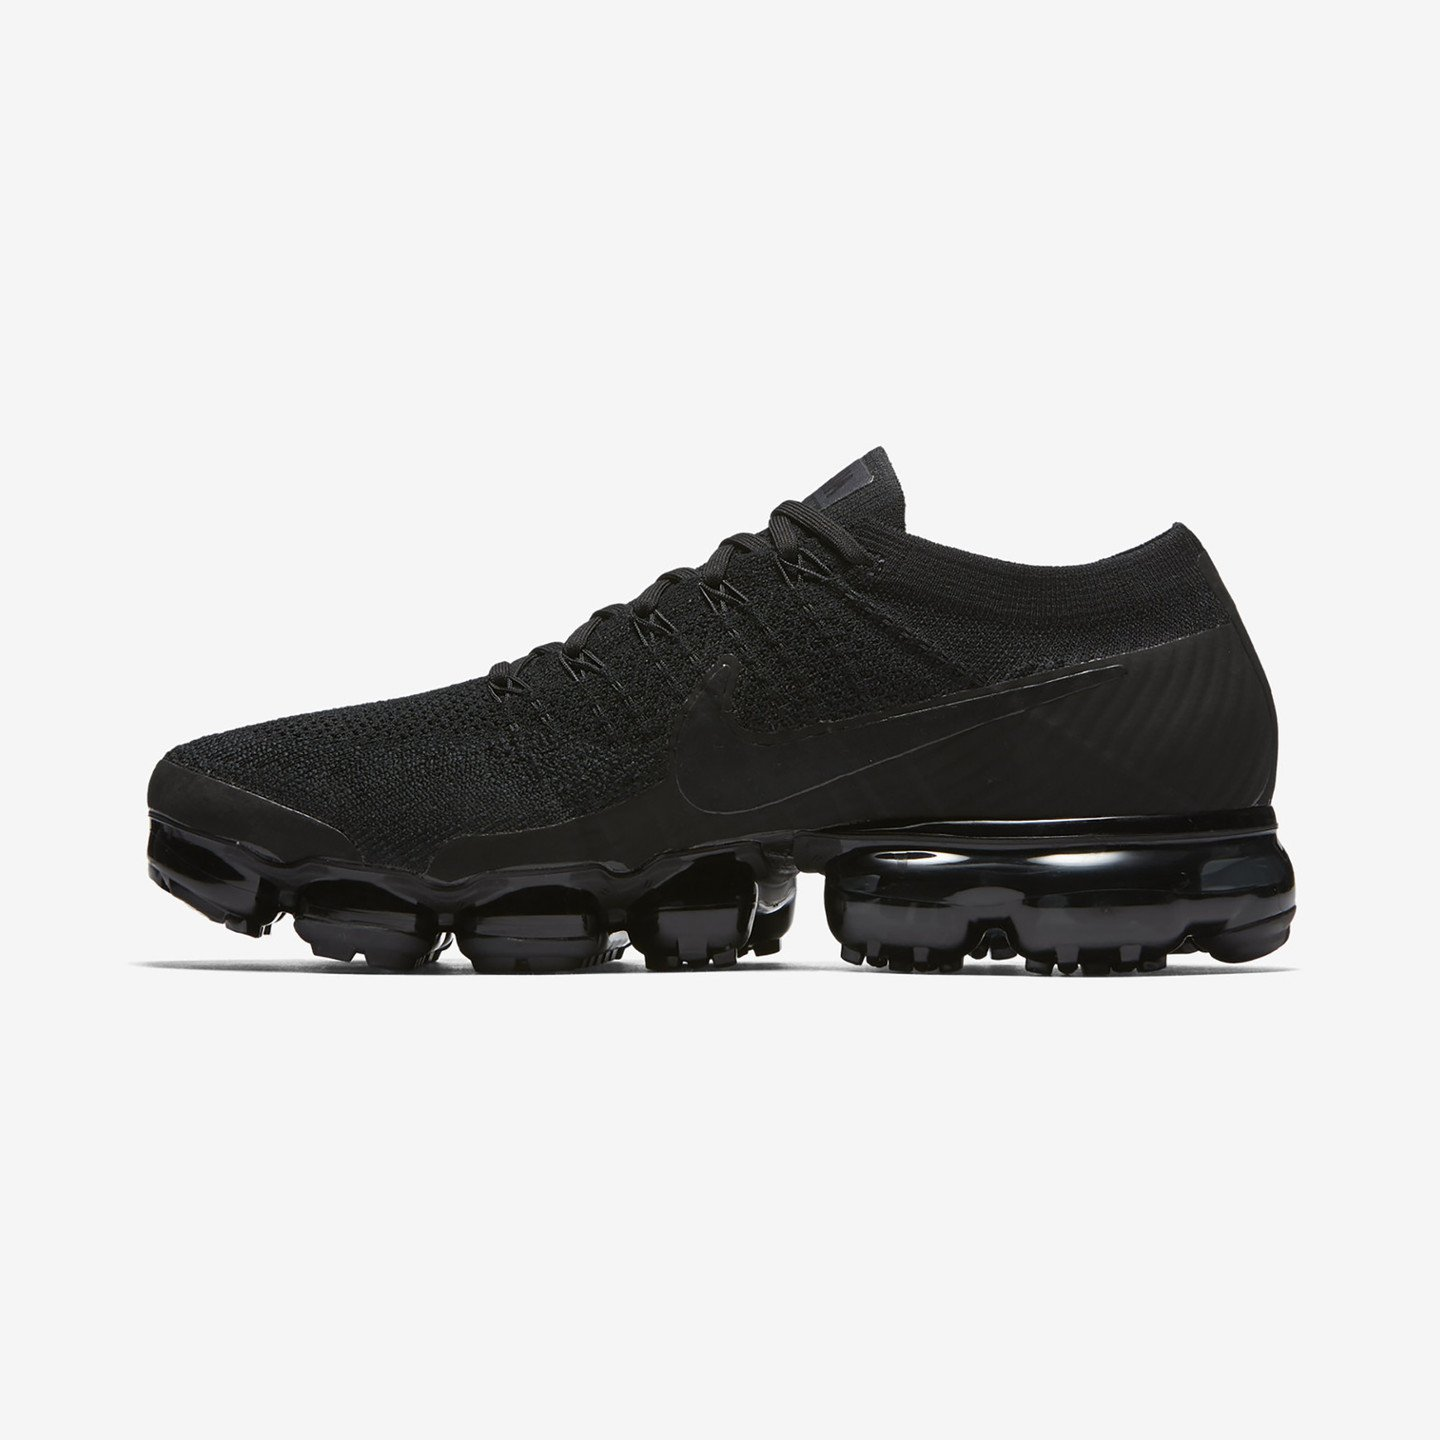 Nike Air Vapormax Black / Anthracite / White 849558-011